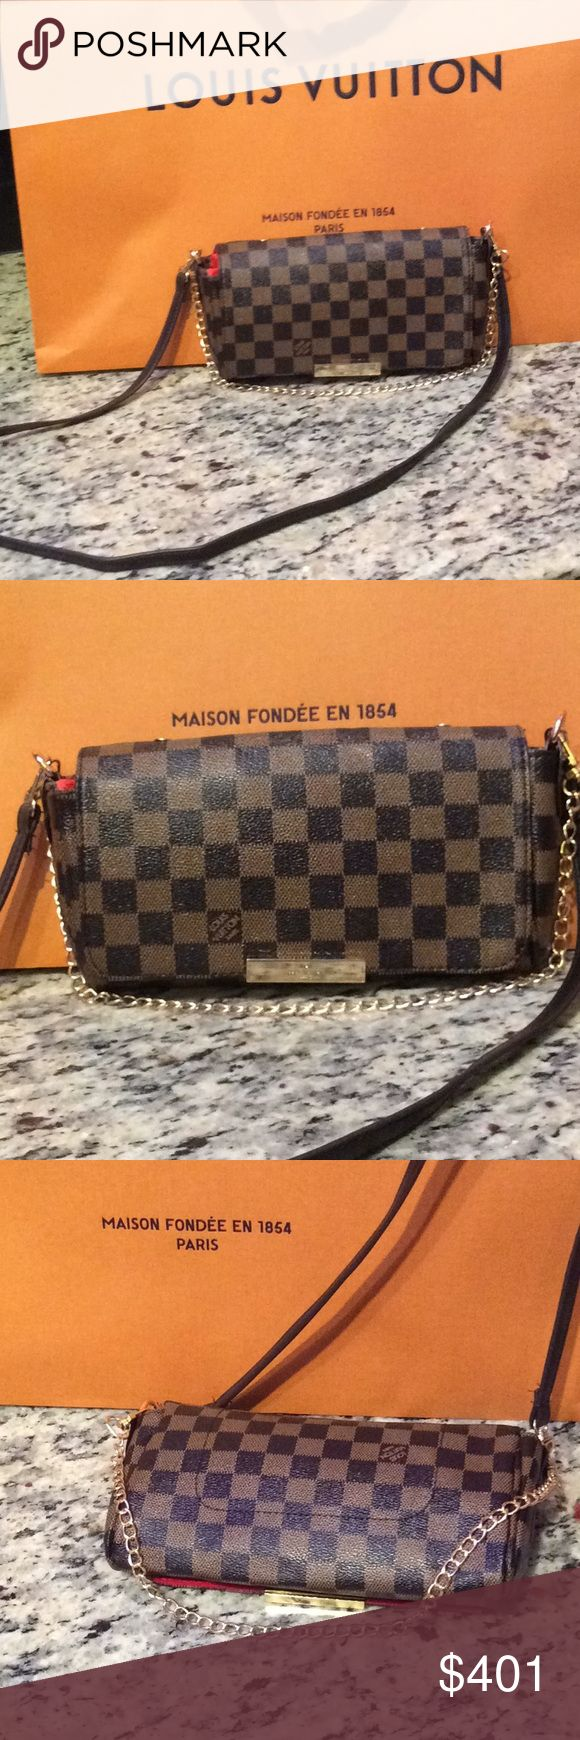 New Louis Vuitton chain Damier bag Purse handbag Just make an offer All reasonable offers will be considered   This is a brand new Louis Vuitton chain Damien  bag LV print this is an INSPIRED or not auth piece i think bc i can't find a date stamp in it so I will sell this piece at a fraction of the cost of a real. Louis Vuitton Bags Shoulder Bags